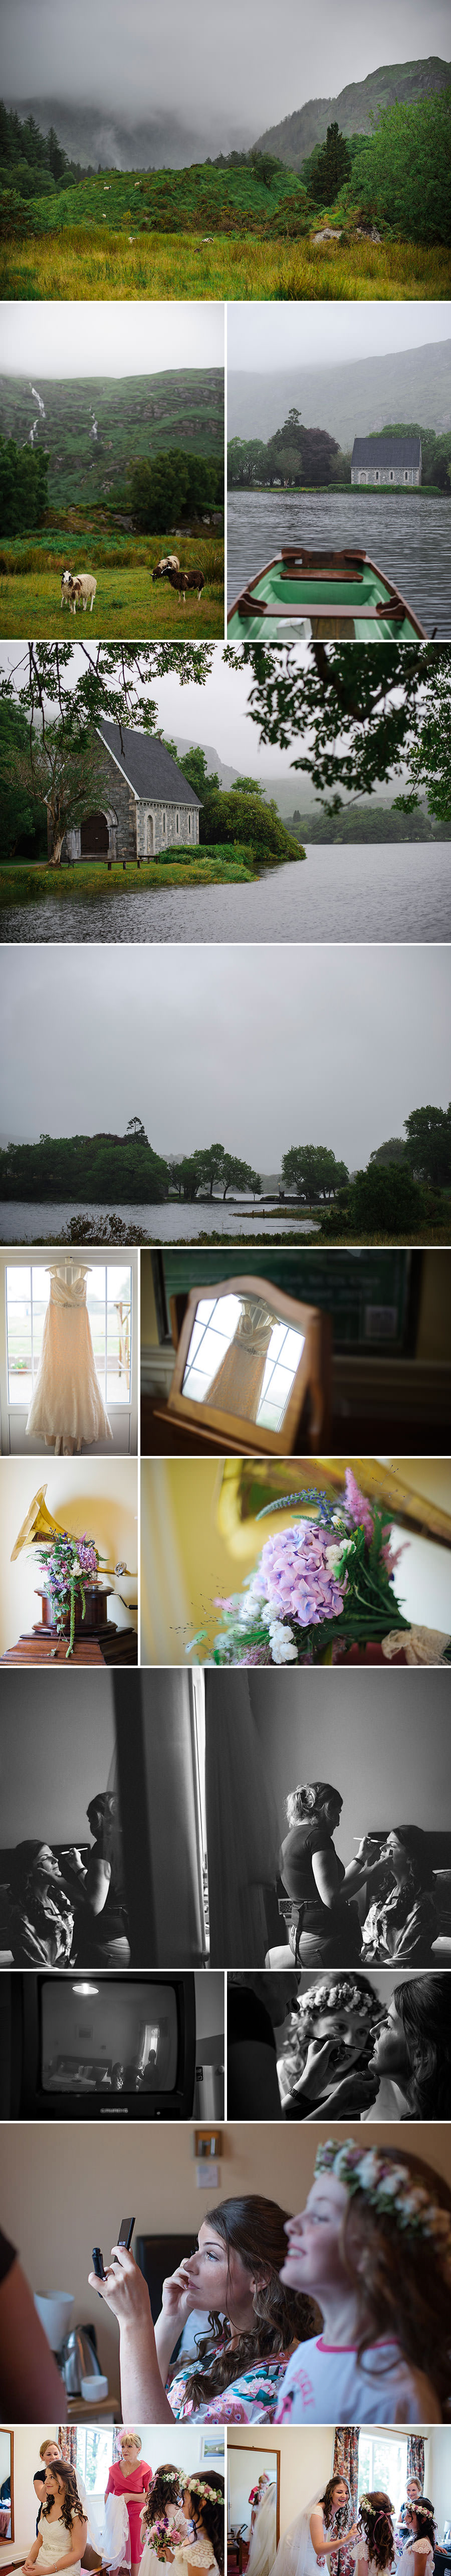 M + G | The Rectory Glandore Wedding | Cork Wedding Photography 14